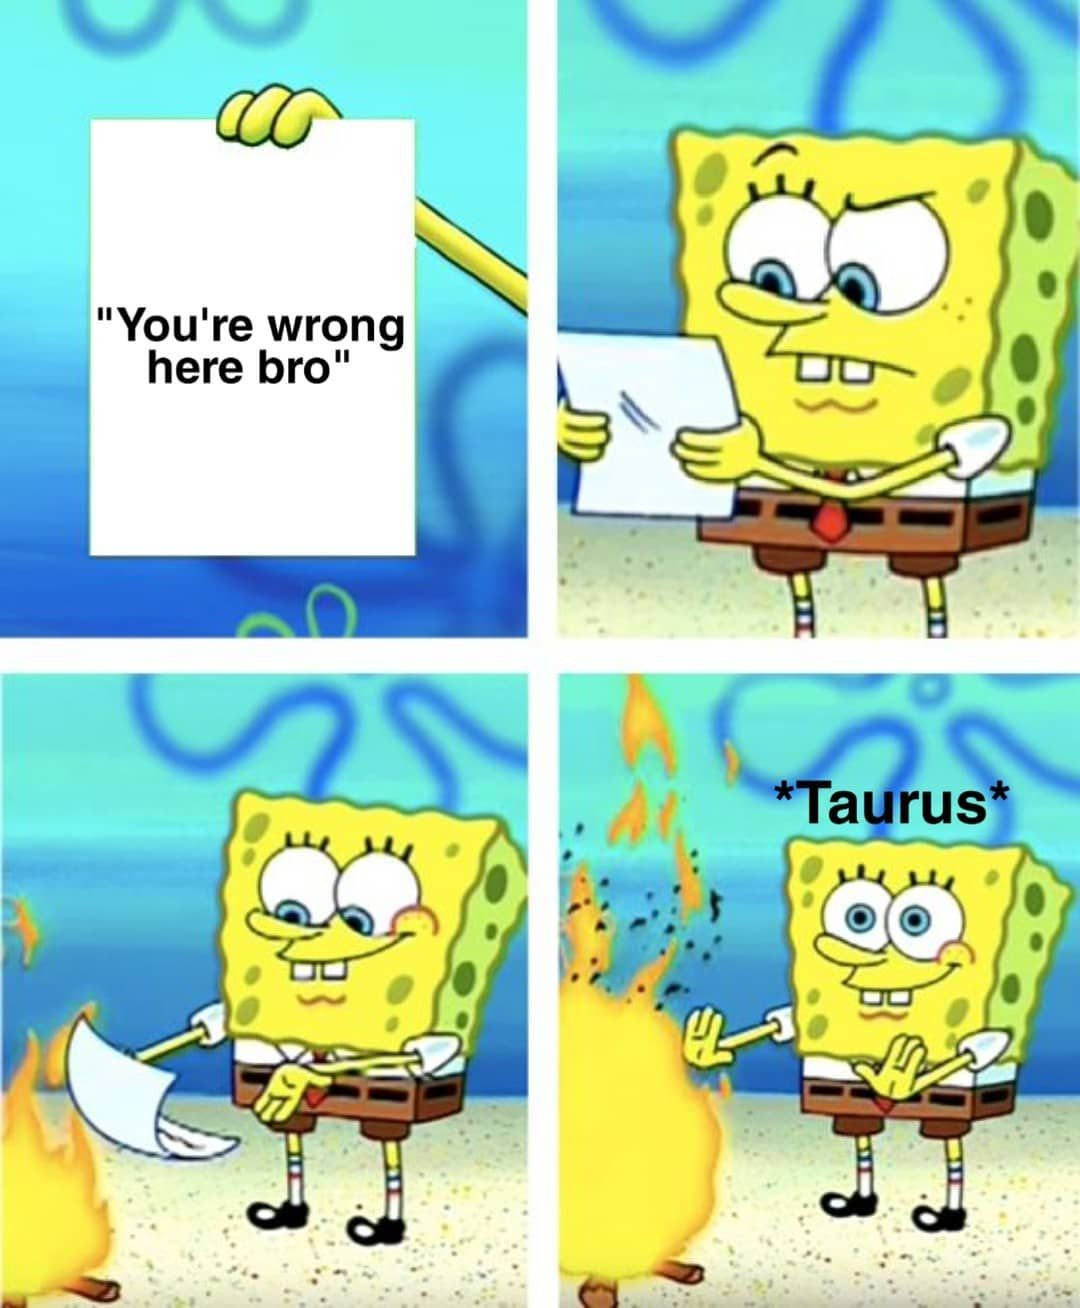 Tag A Taurus In The Comments Bellow Lmao Horoscope Horoscopes Horoscopememes Horoscopepost Horoscopefeeds Zodiacsign Funny Memes Spongebob Memes Memes